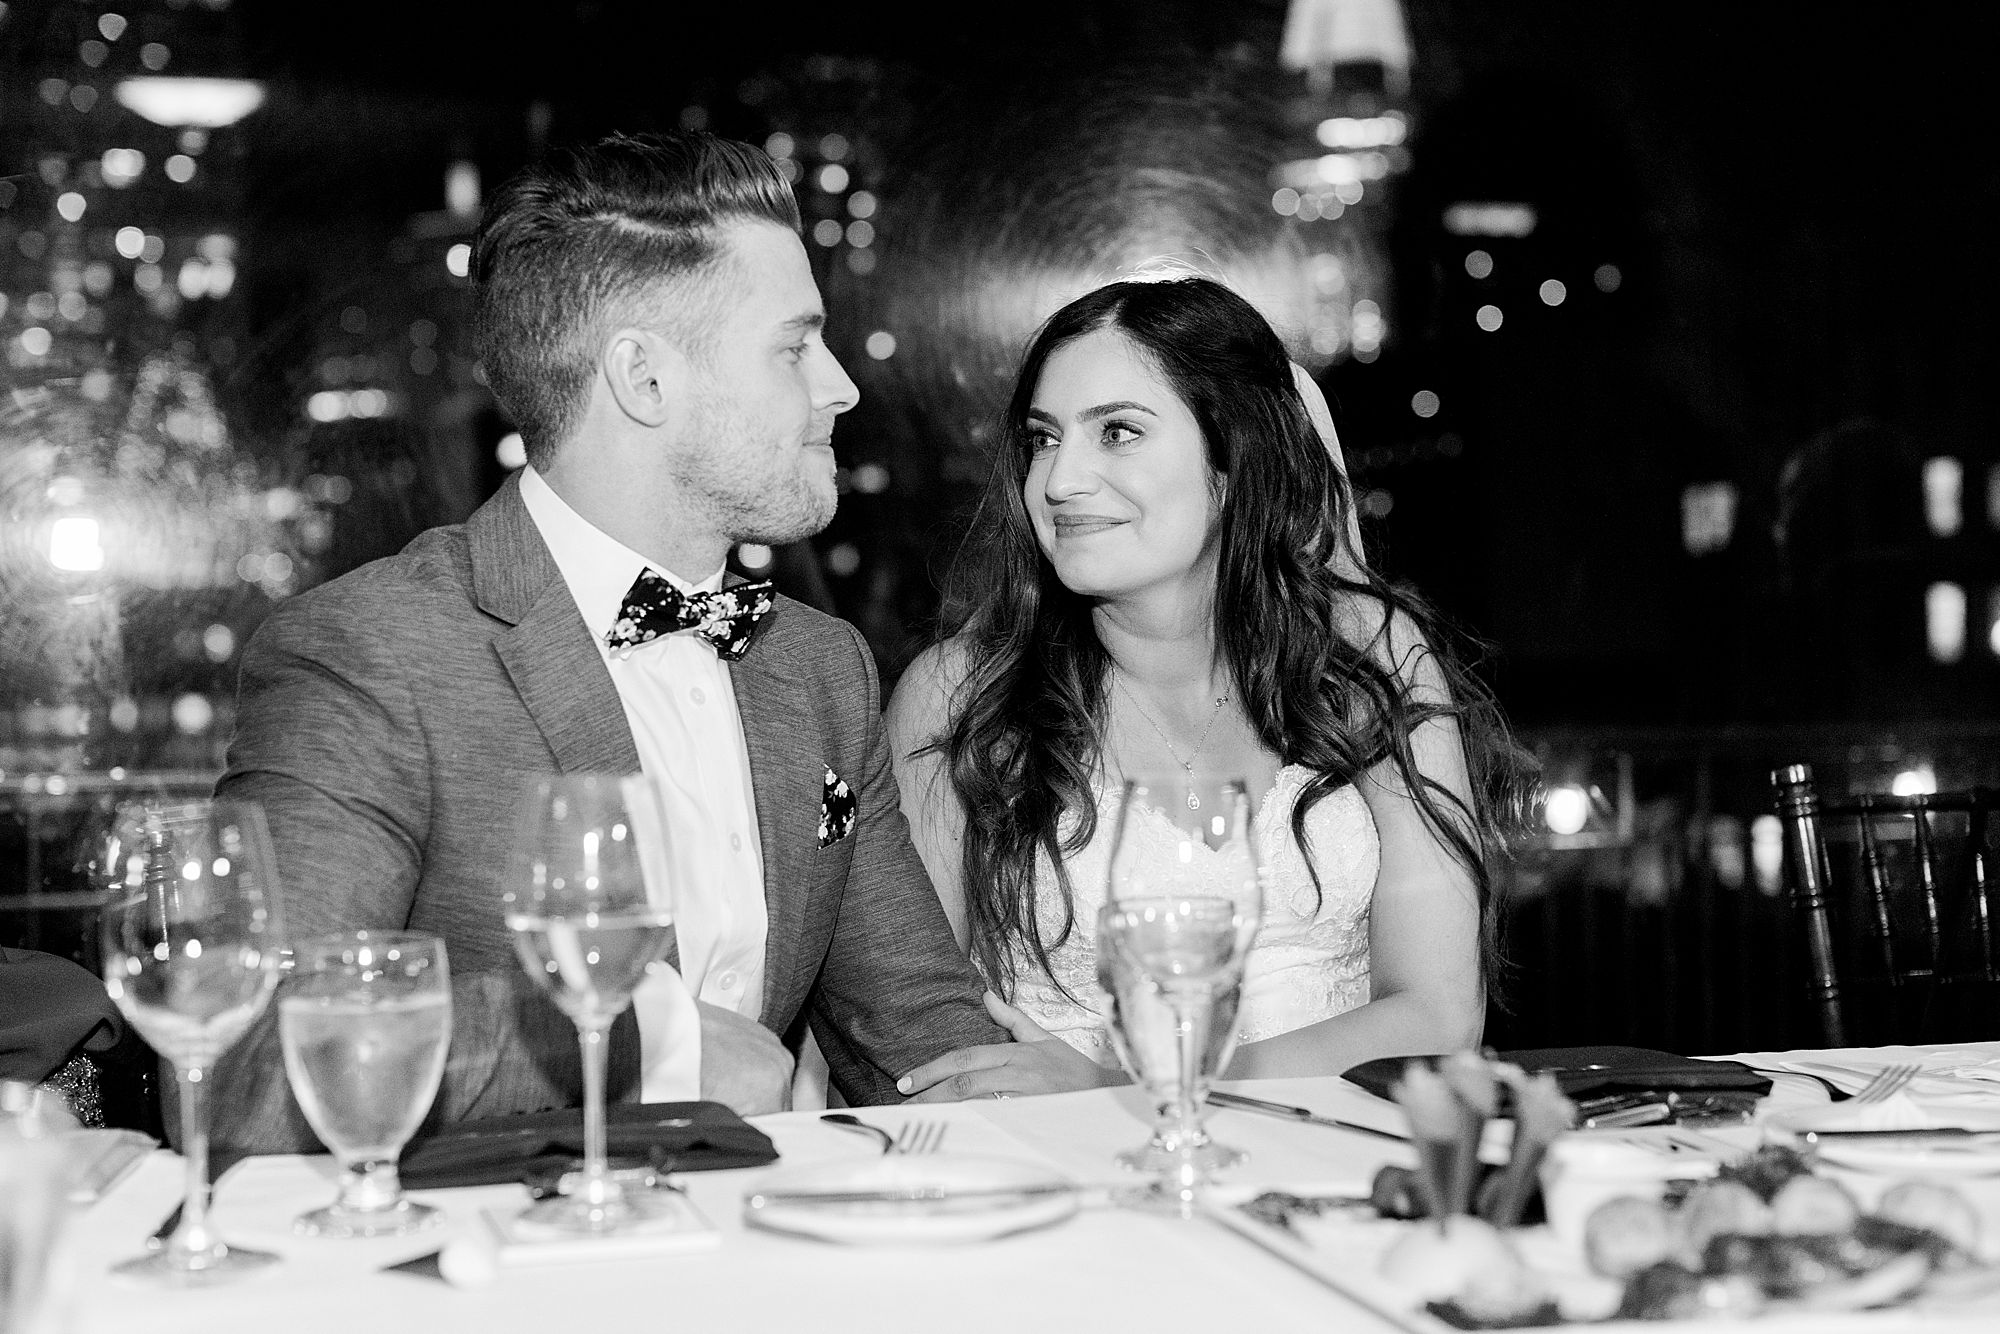 University Club Wedding in San Francisco - Cortney and Jon - San Francisco Wedding - Ashley Baumgartner - SF Wedding Photographer_0106.jpg